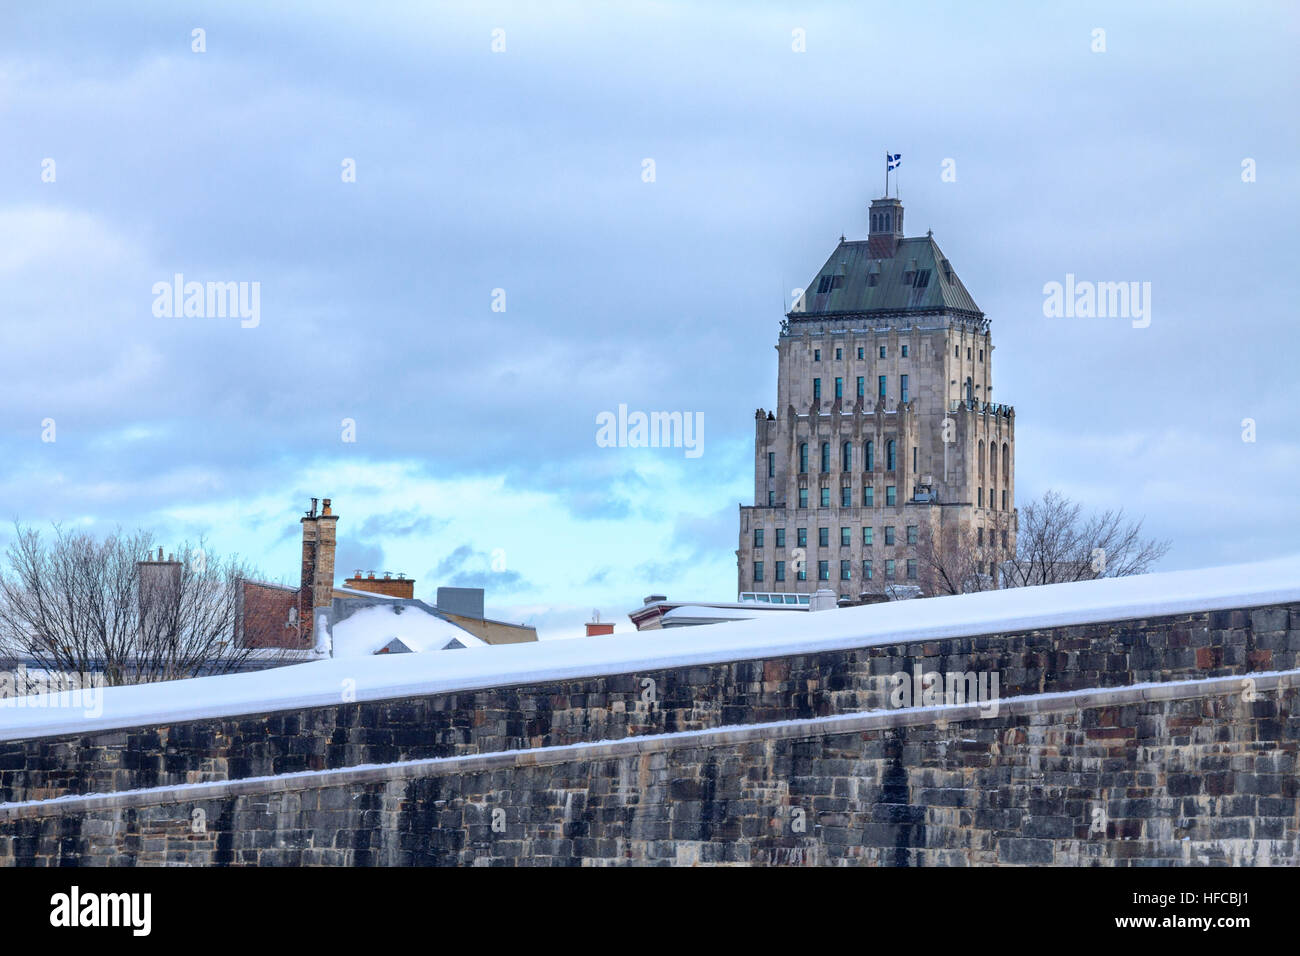 View of the Price Building (Edifice Price) from the Quebec City Ramparts - Stock Image